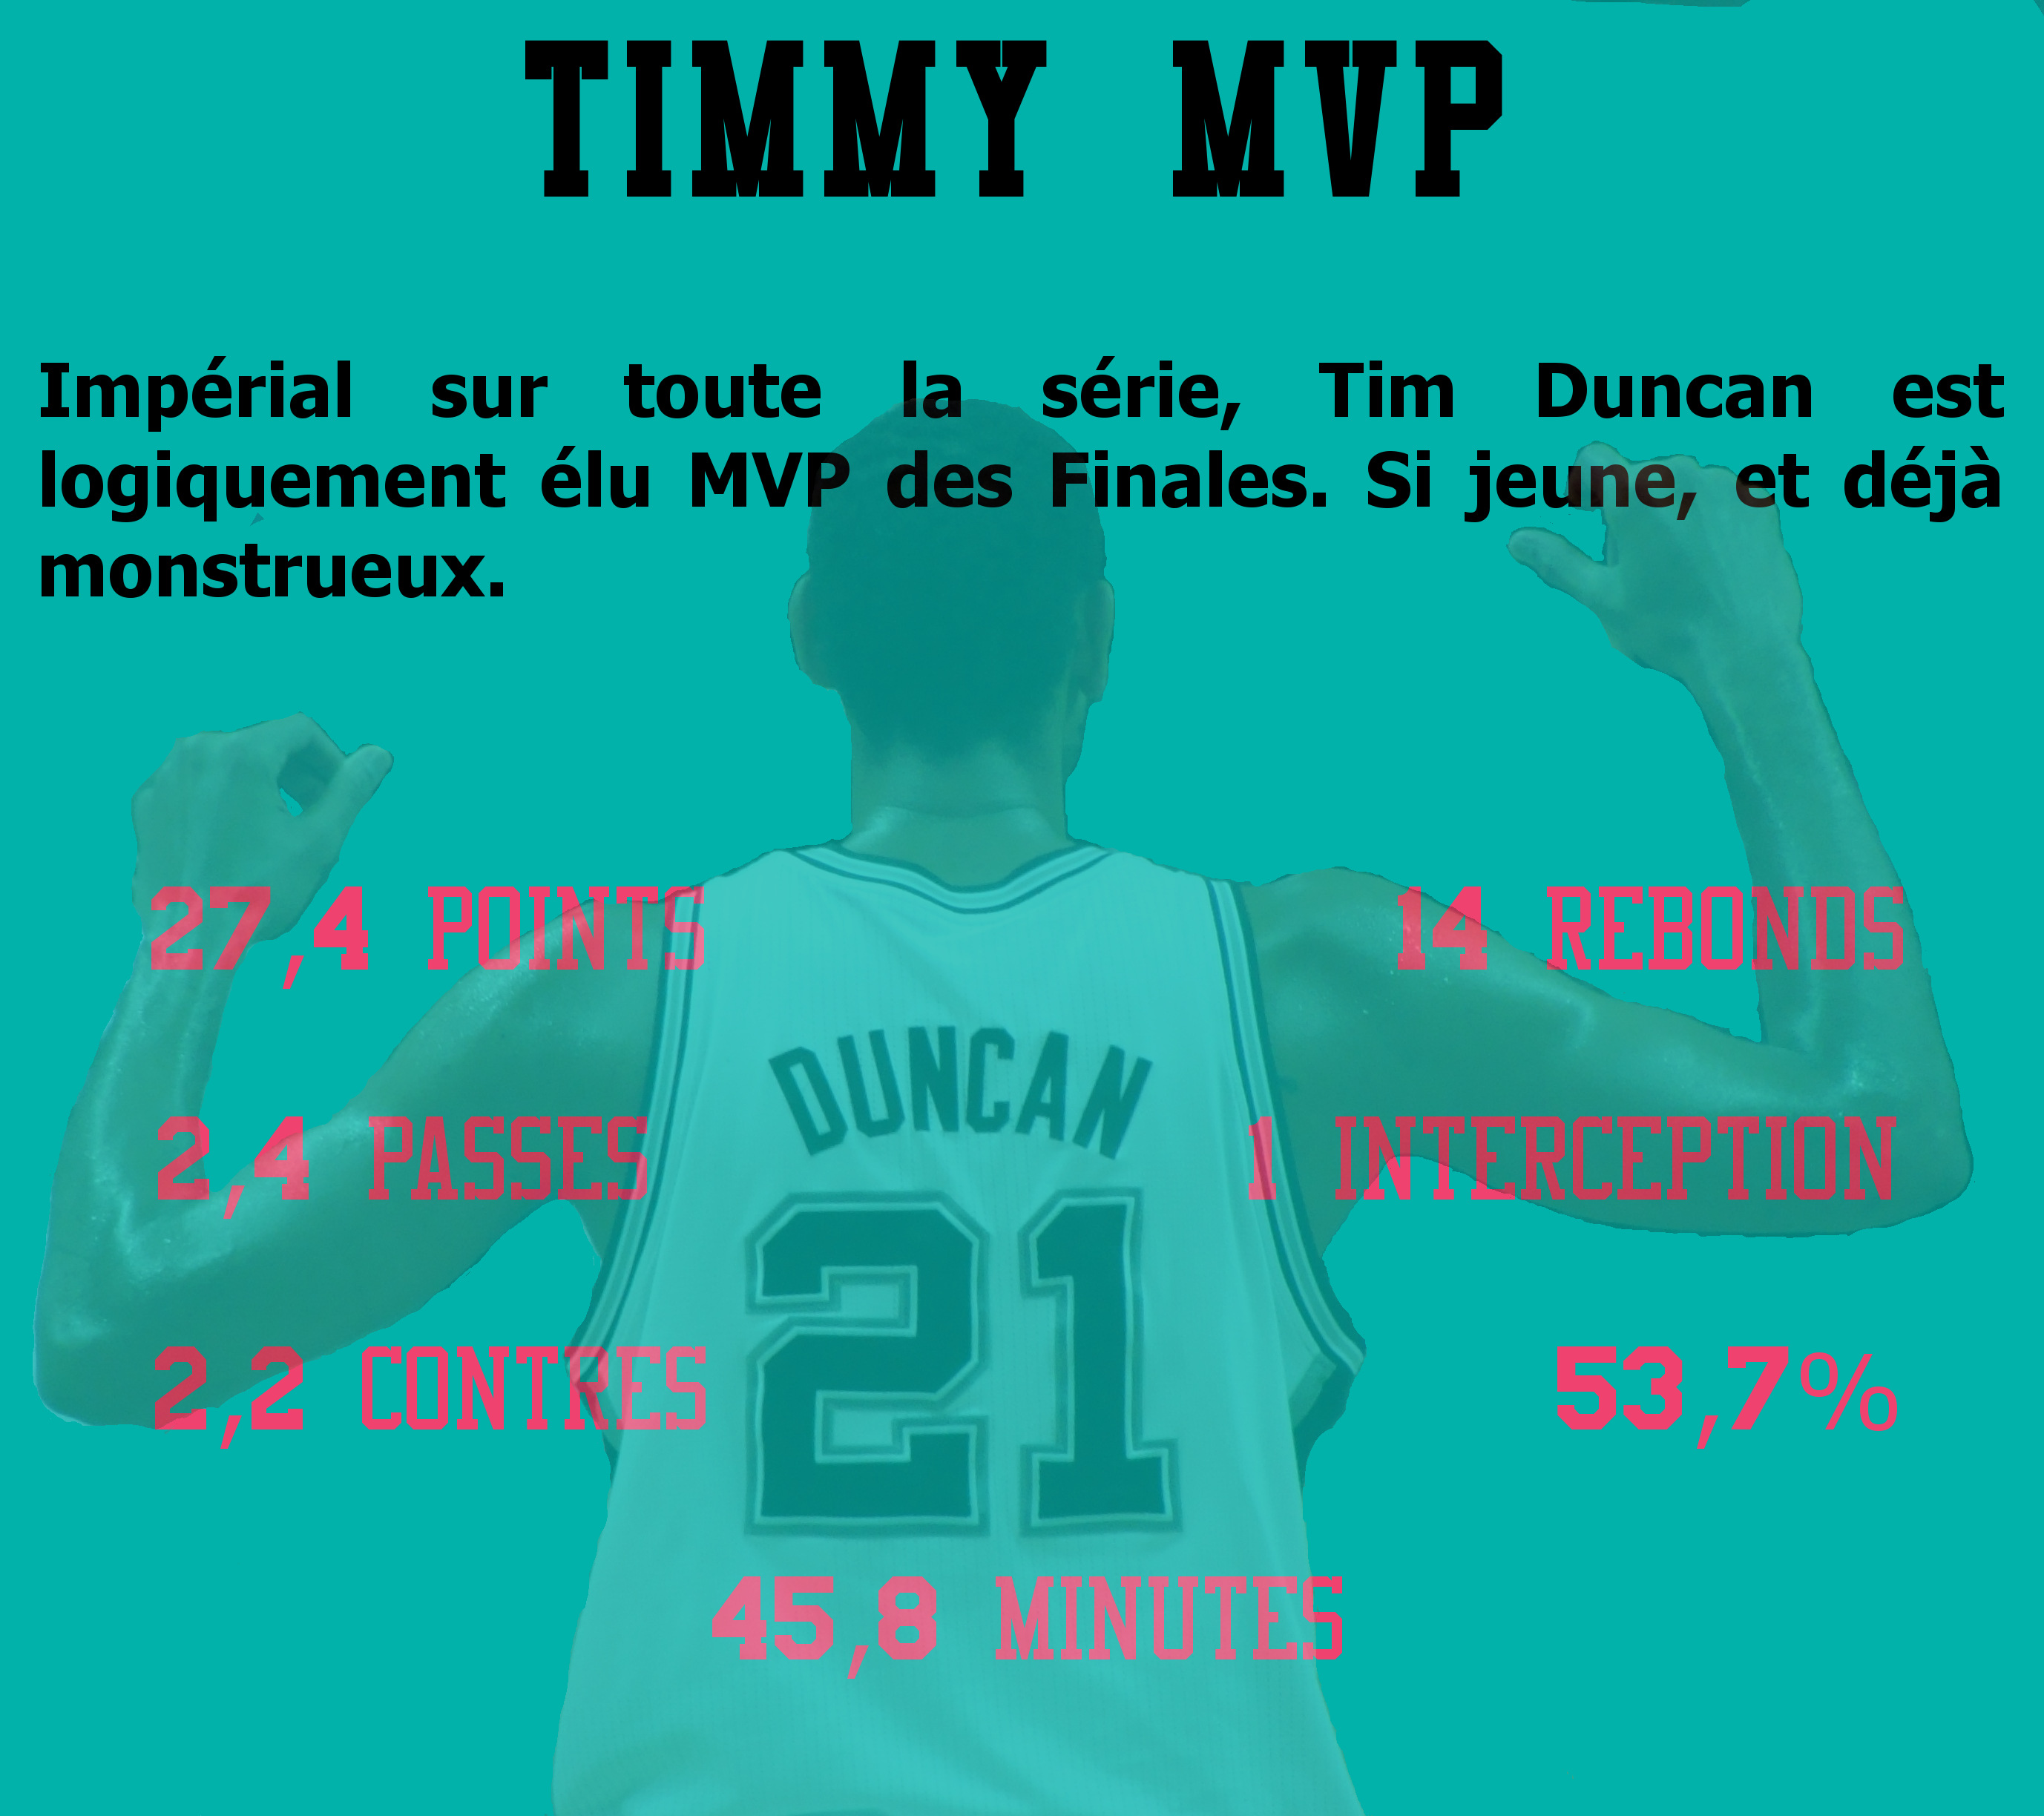 Knicks vs Spurs Tim Duncan MVP